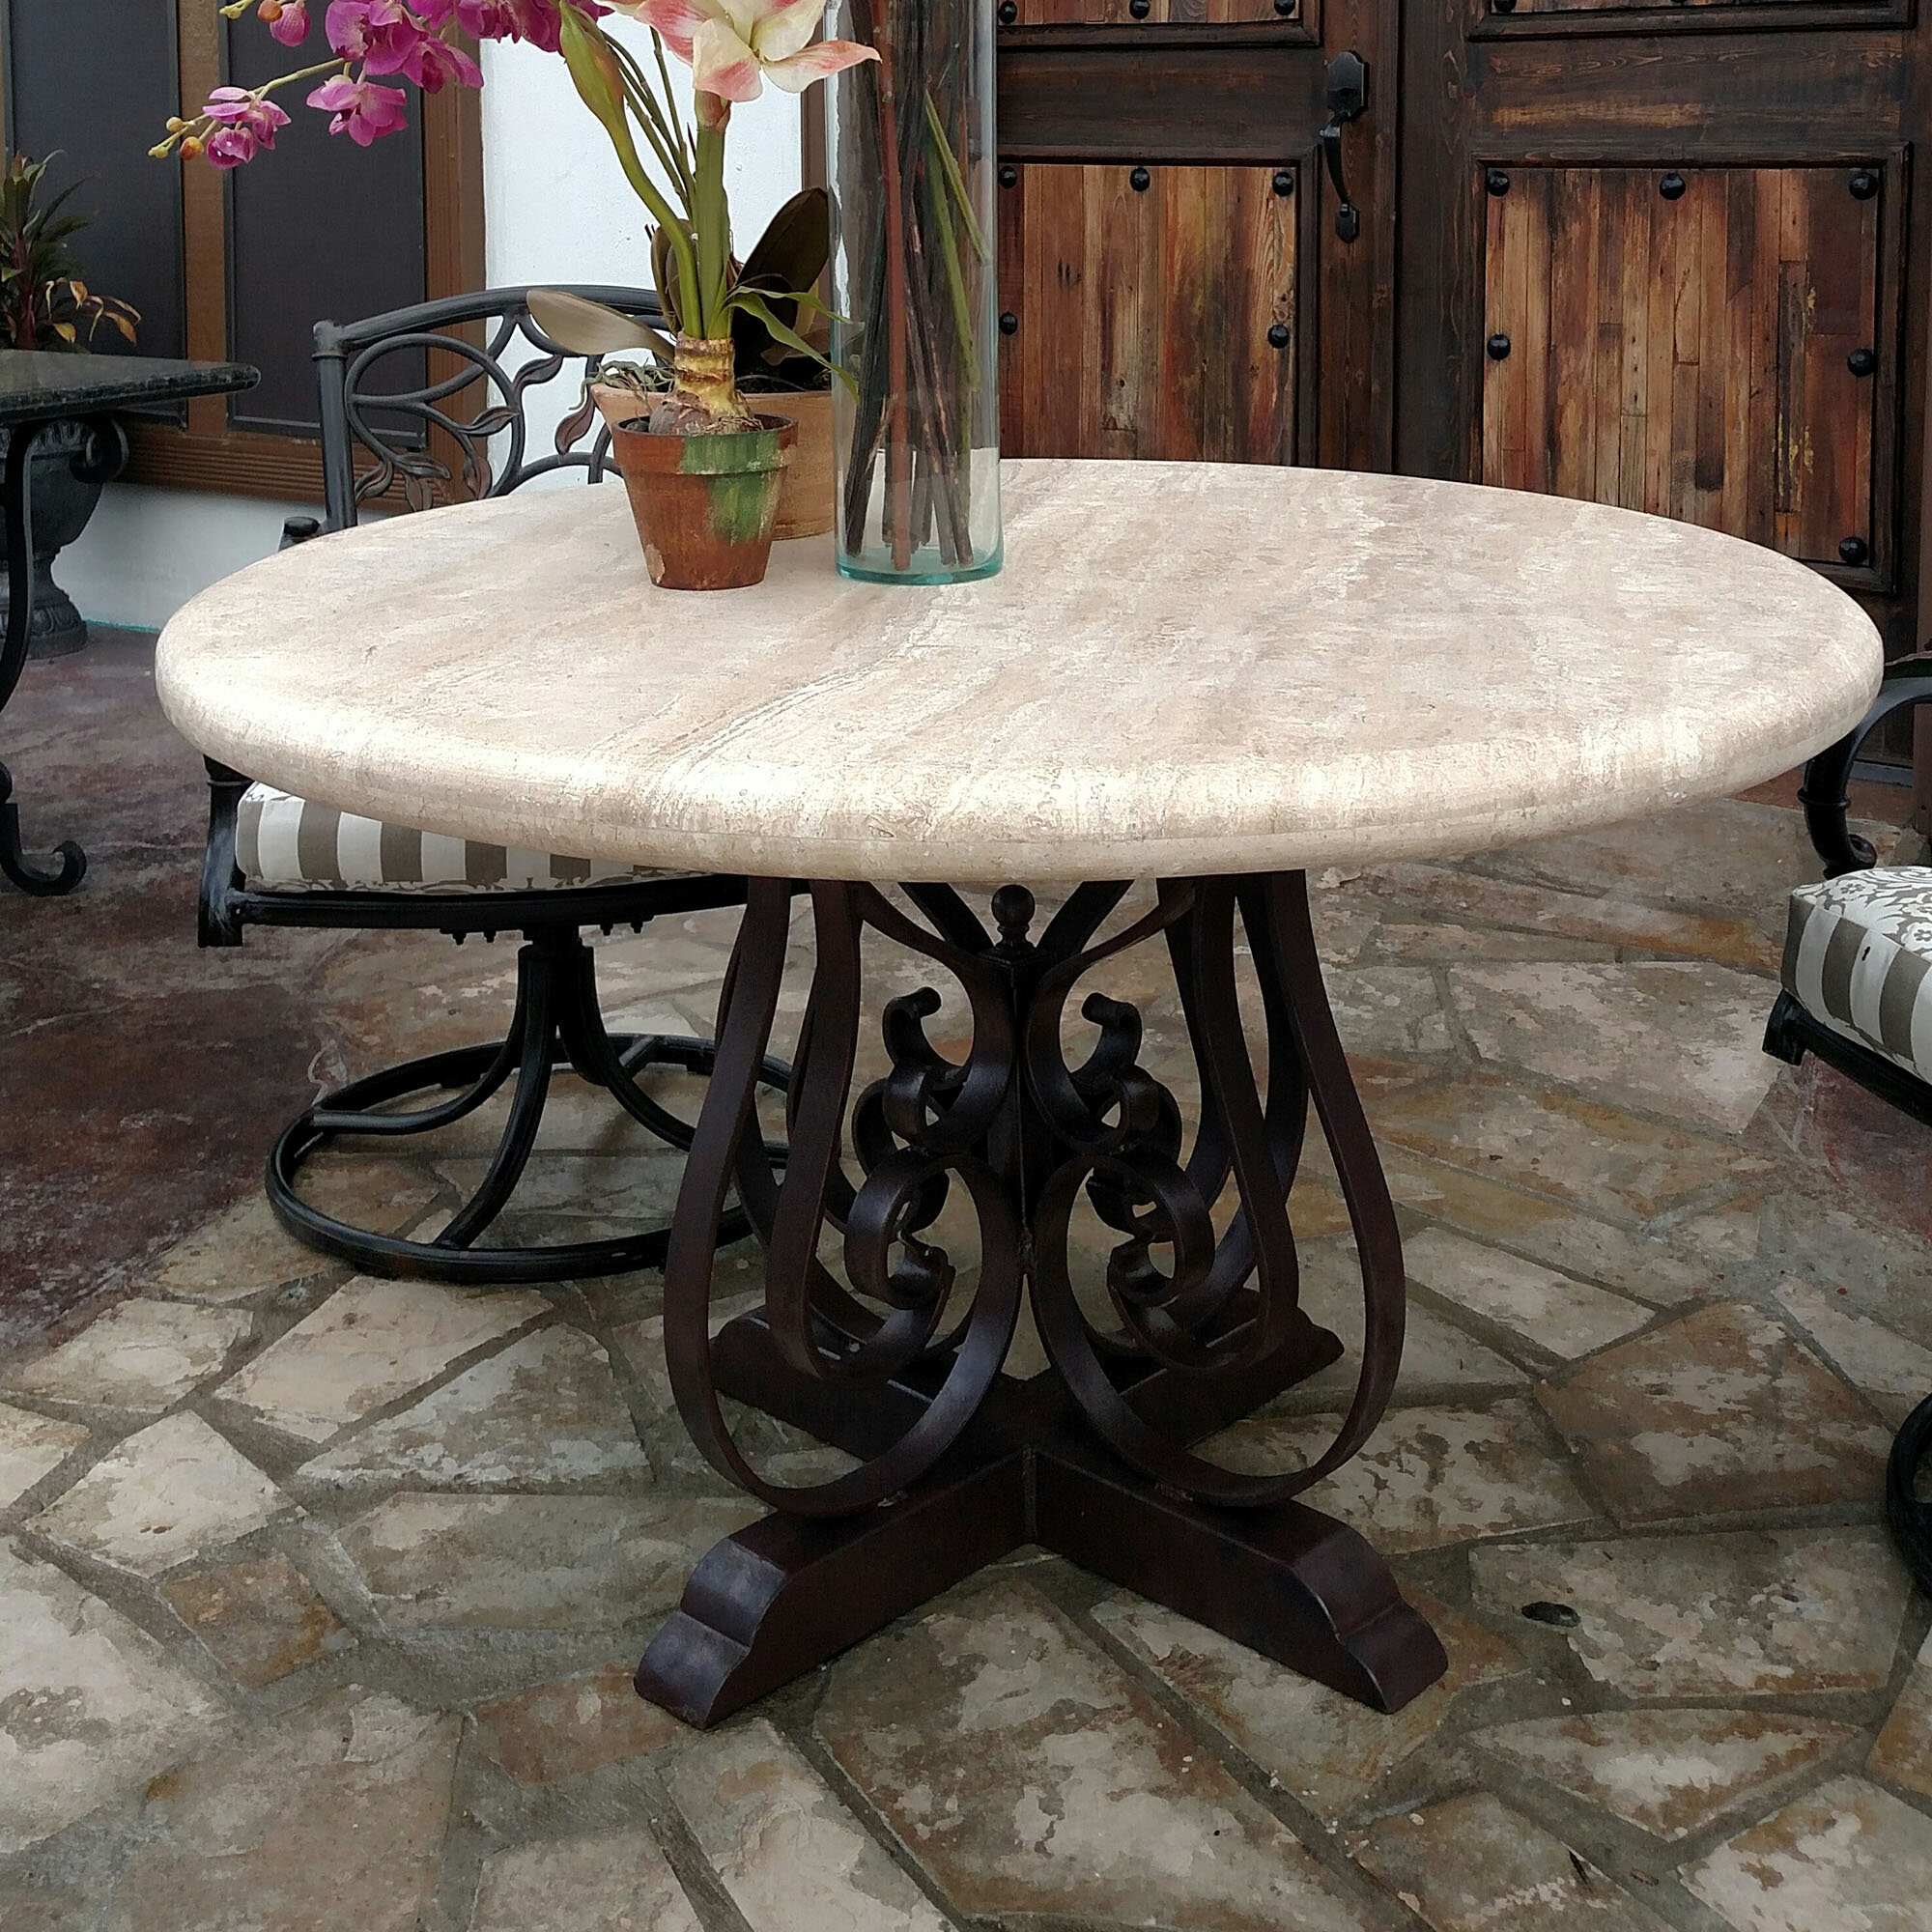 Mexports By Susana Molina Rustic Elegant Dining Table With Wrought Iron Legs And A 48 Round Travertine Top Wayfair